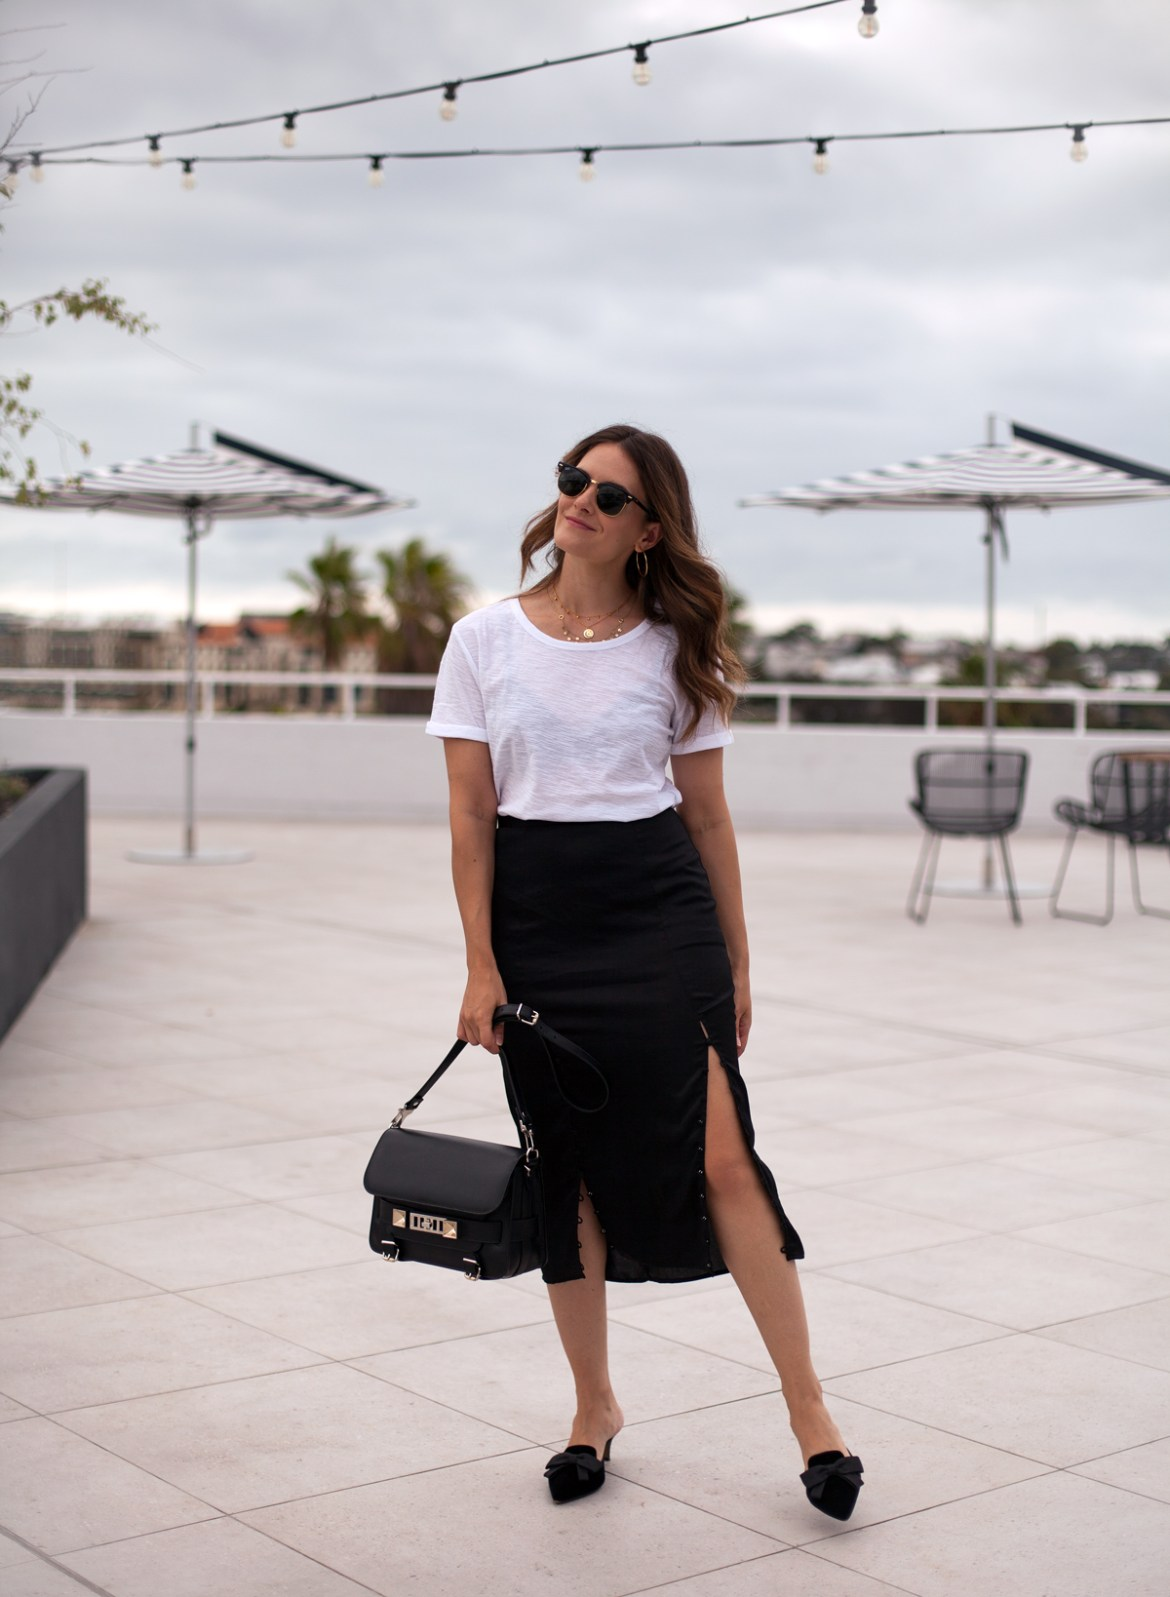 wardrobe new in video on youtube for Inspiring Wit TV Jenelle wearing black midi skirt and PS11 bag from Proenza Schouler